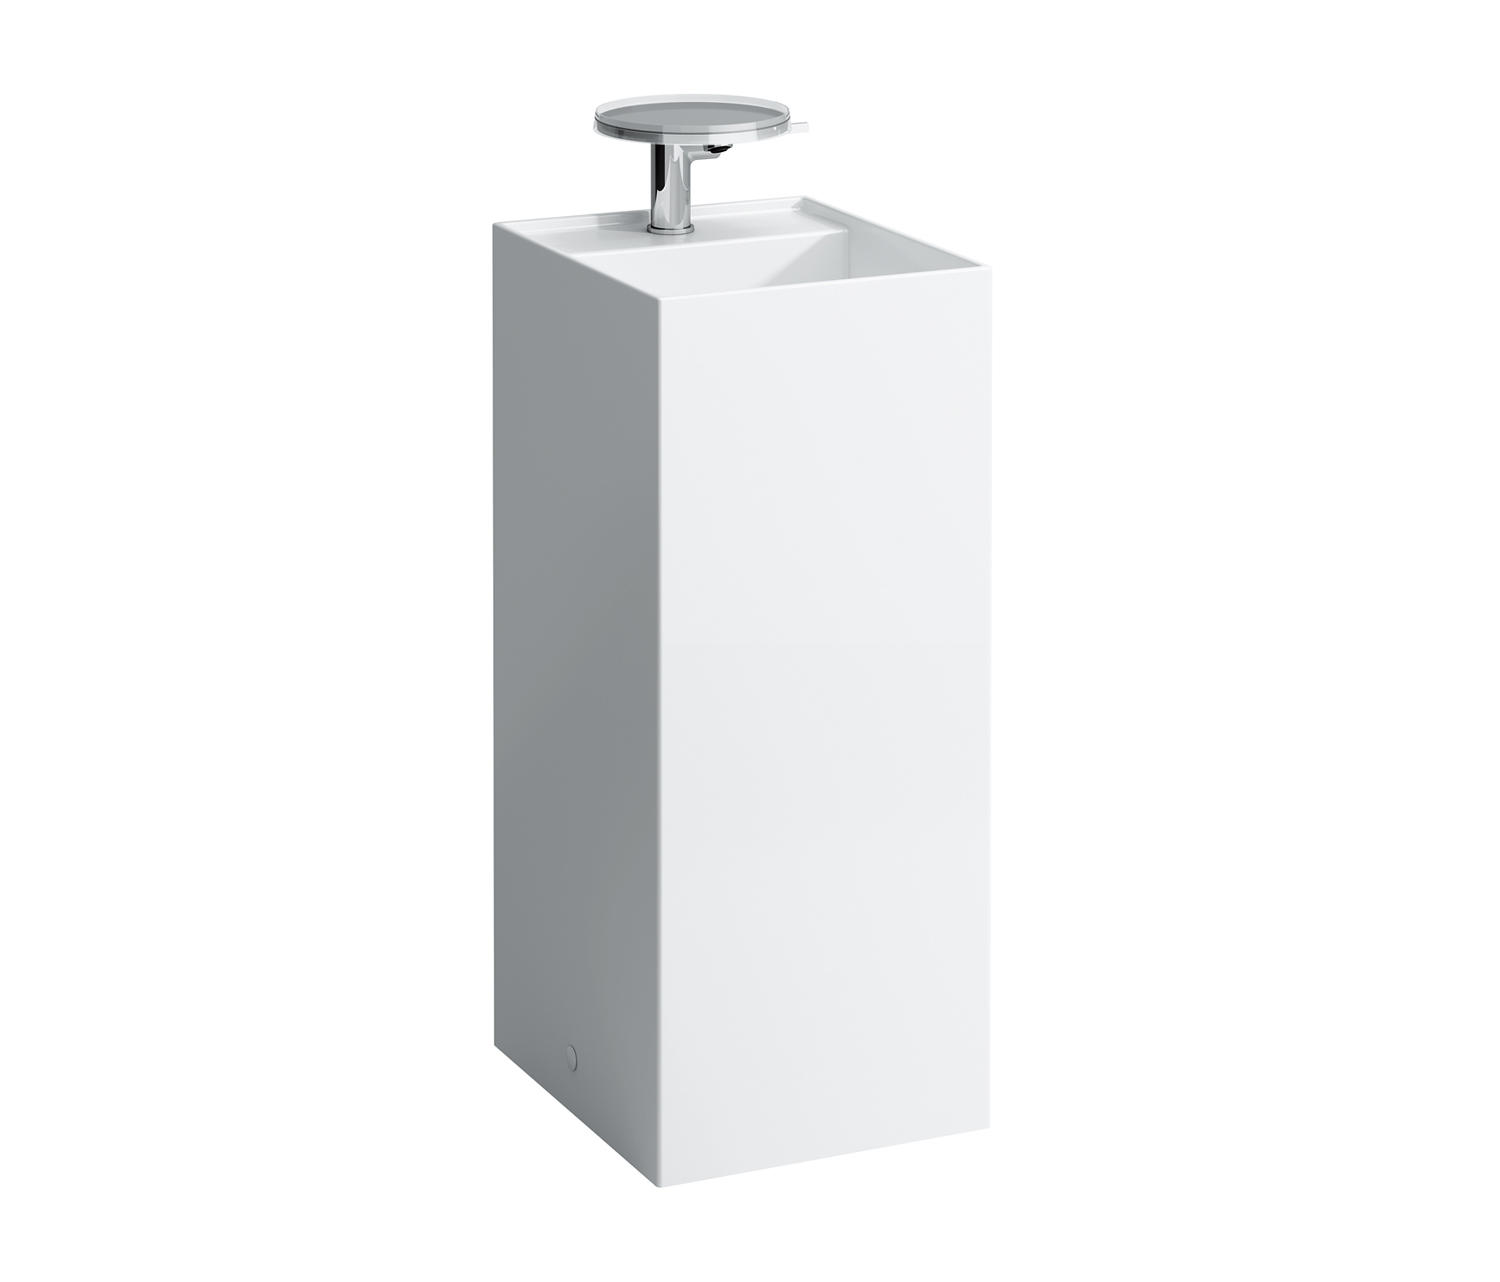 KARTELL BY LAUFEN | FREESTANDING WASHBASIN - Wash basins from Laufen ...